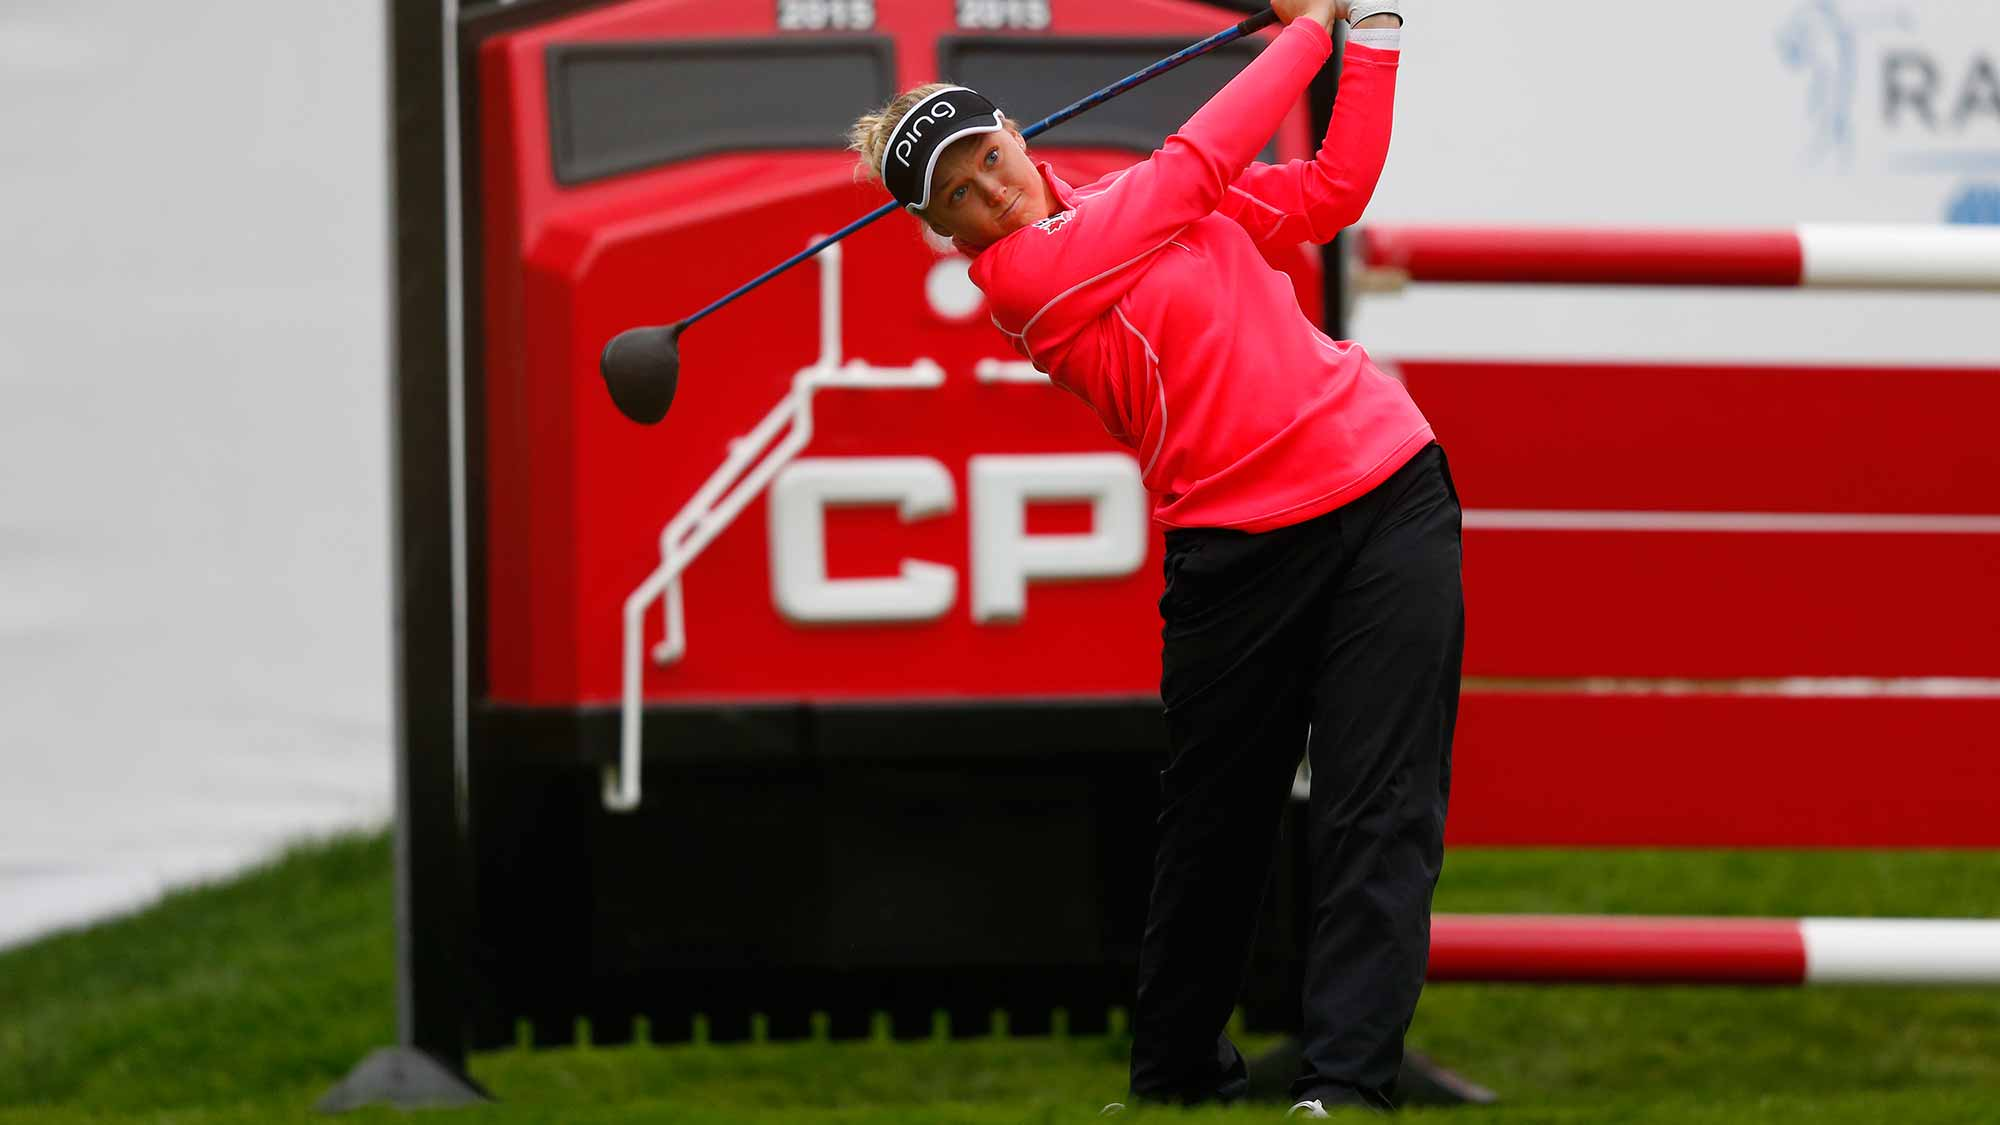 Brooke Henderson of Canada tees off on the first hole during the third round of the Canadian Pacific Women's Open at Priddis Greens Golf and Country Club